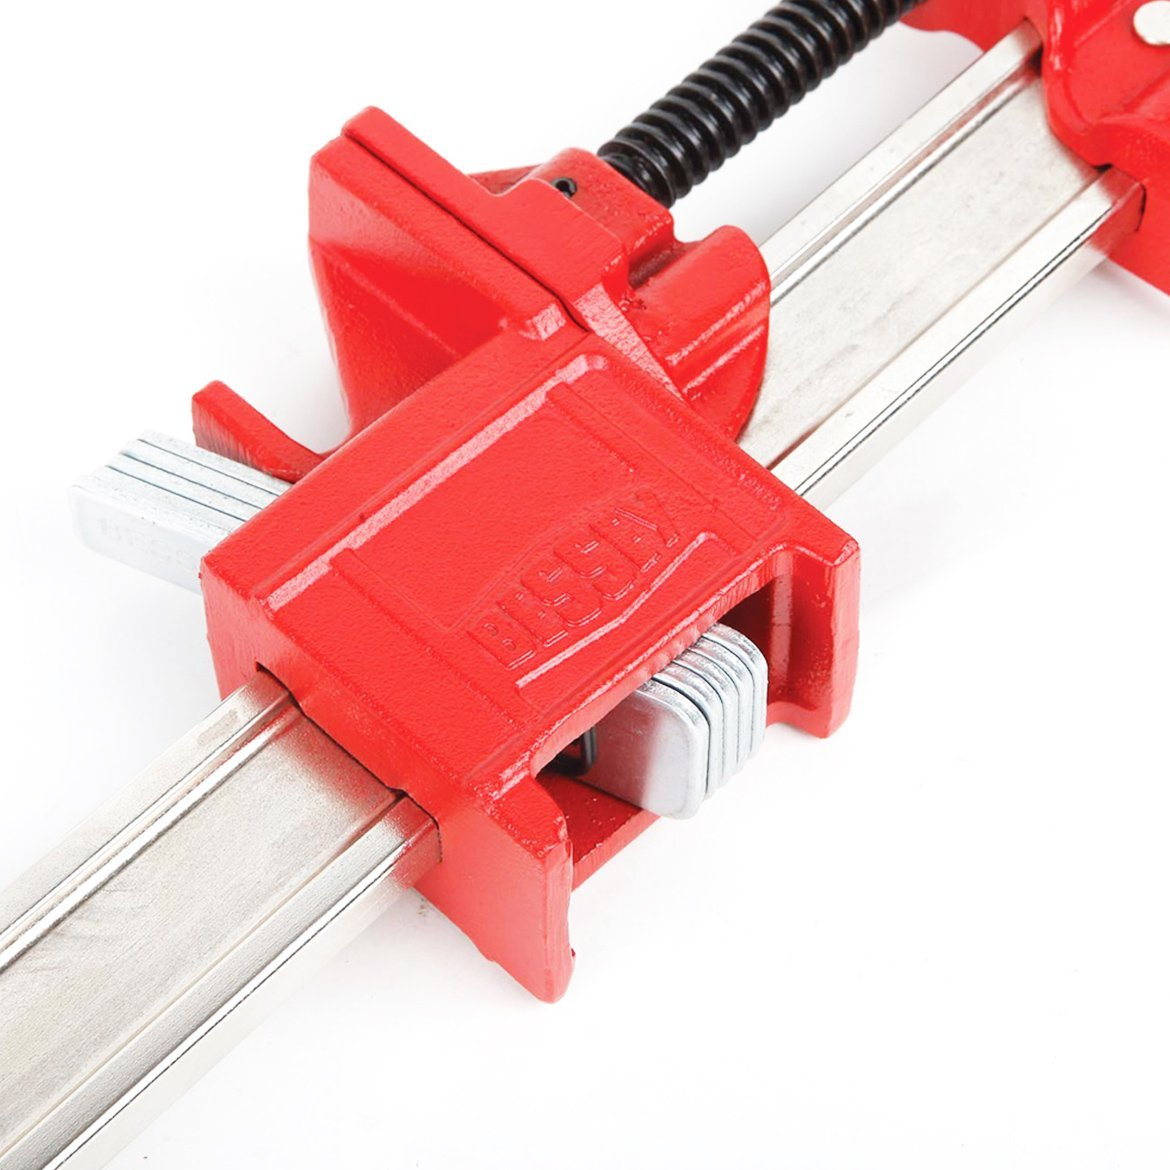 Bessey Exceptional Strength Ibeam Bar Clamps From 24 96 Inches For Dcc Wiring Books Woodworking